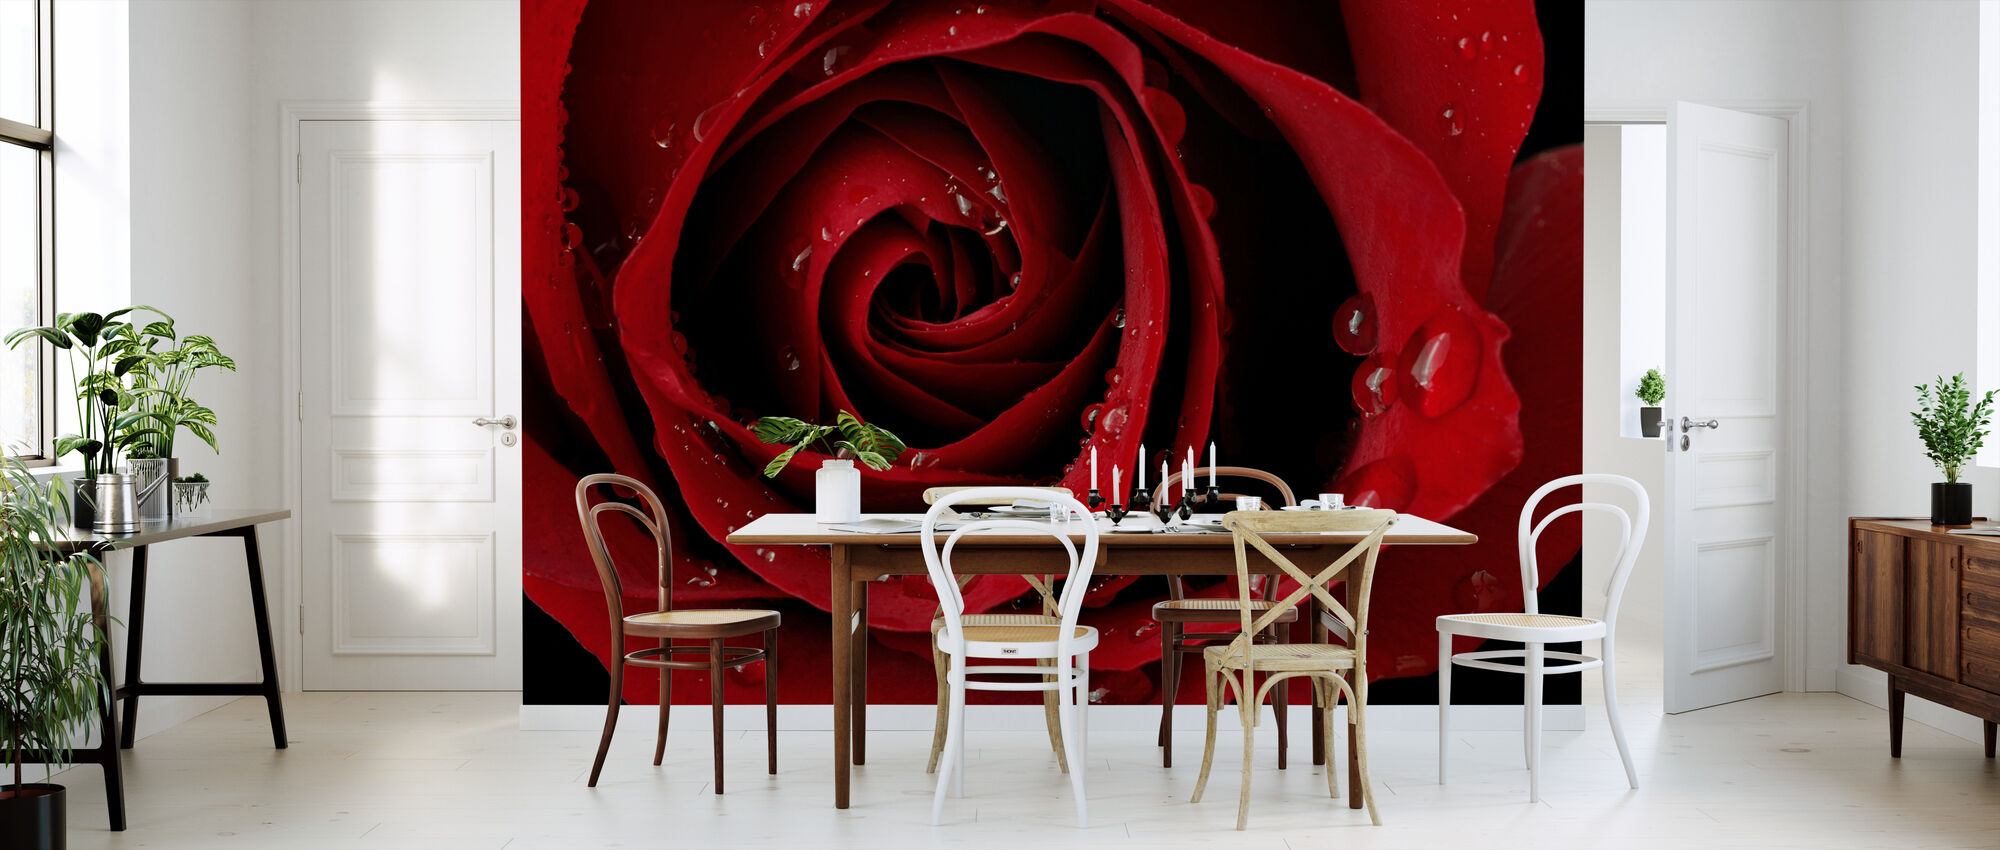 Dark Red Rose - Wallpaper - Kitchen